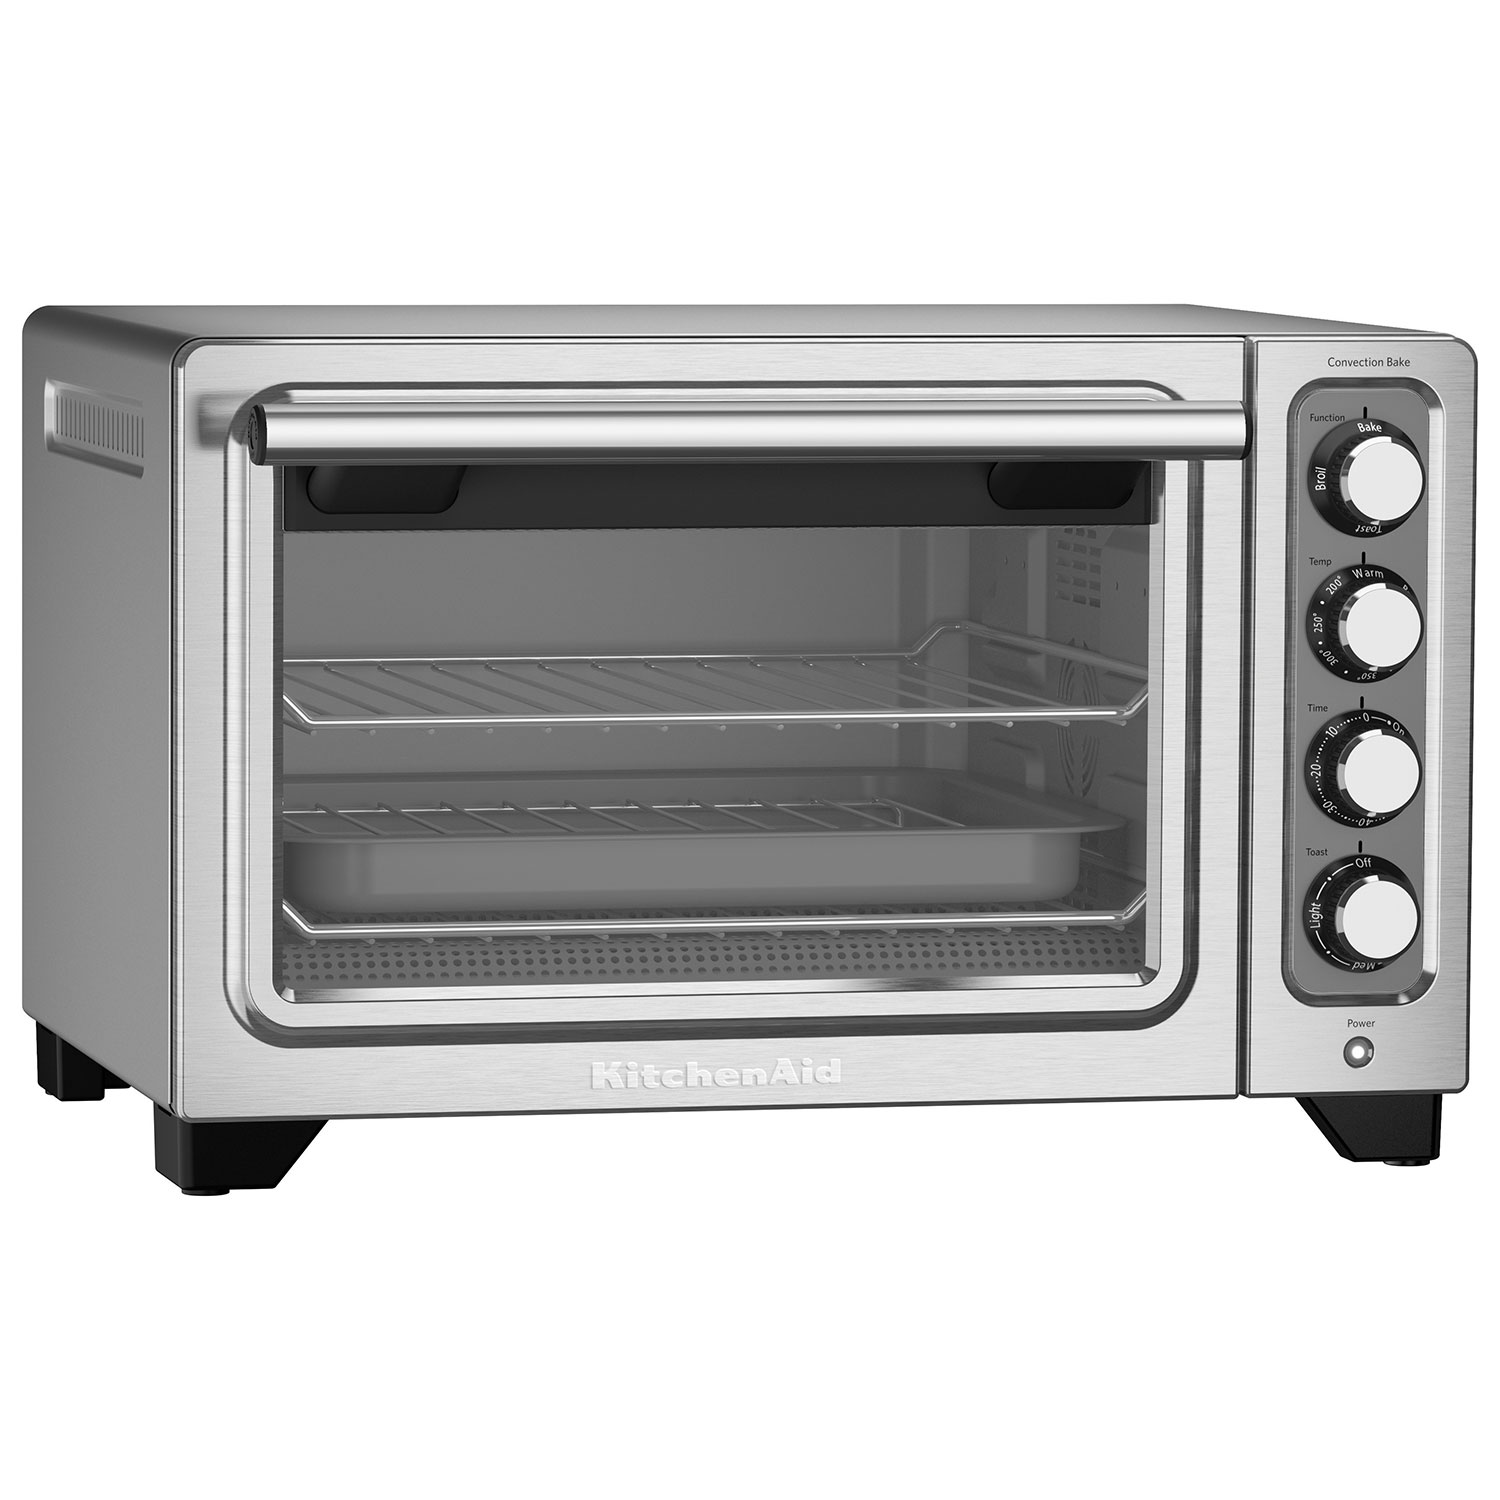 product fingerhut fryer scl to cuisinart oven toaster hover image click over nnzye full zoom for va uts air